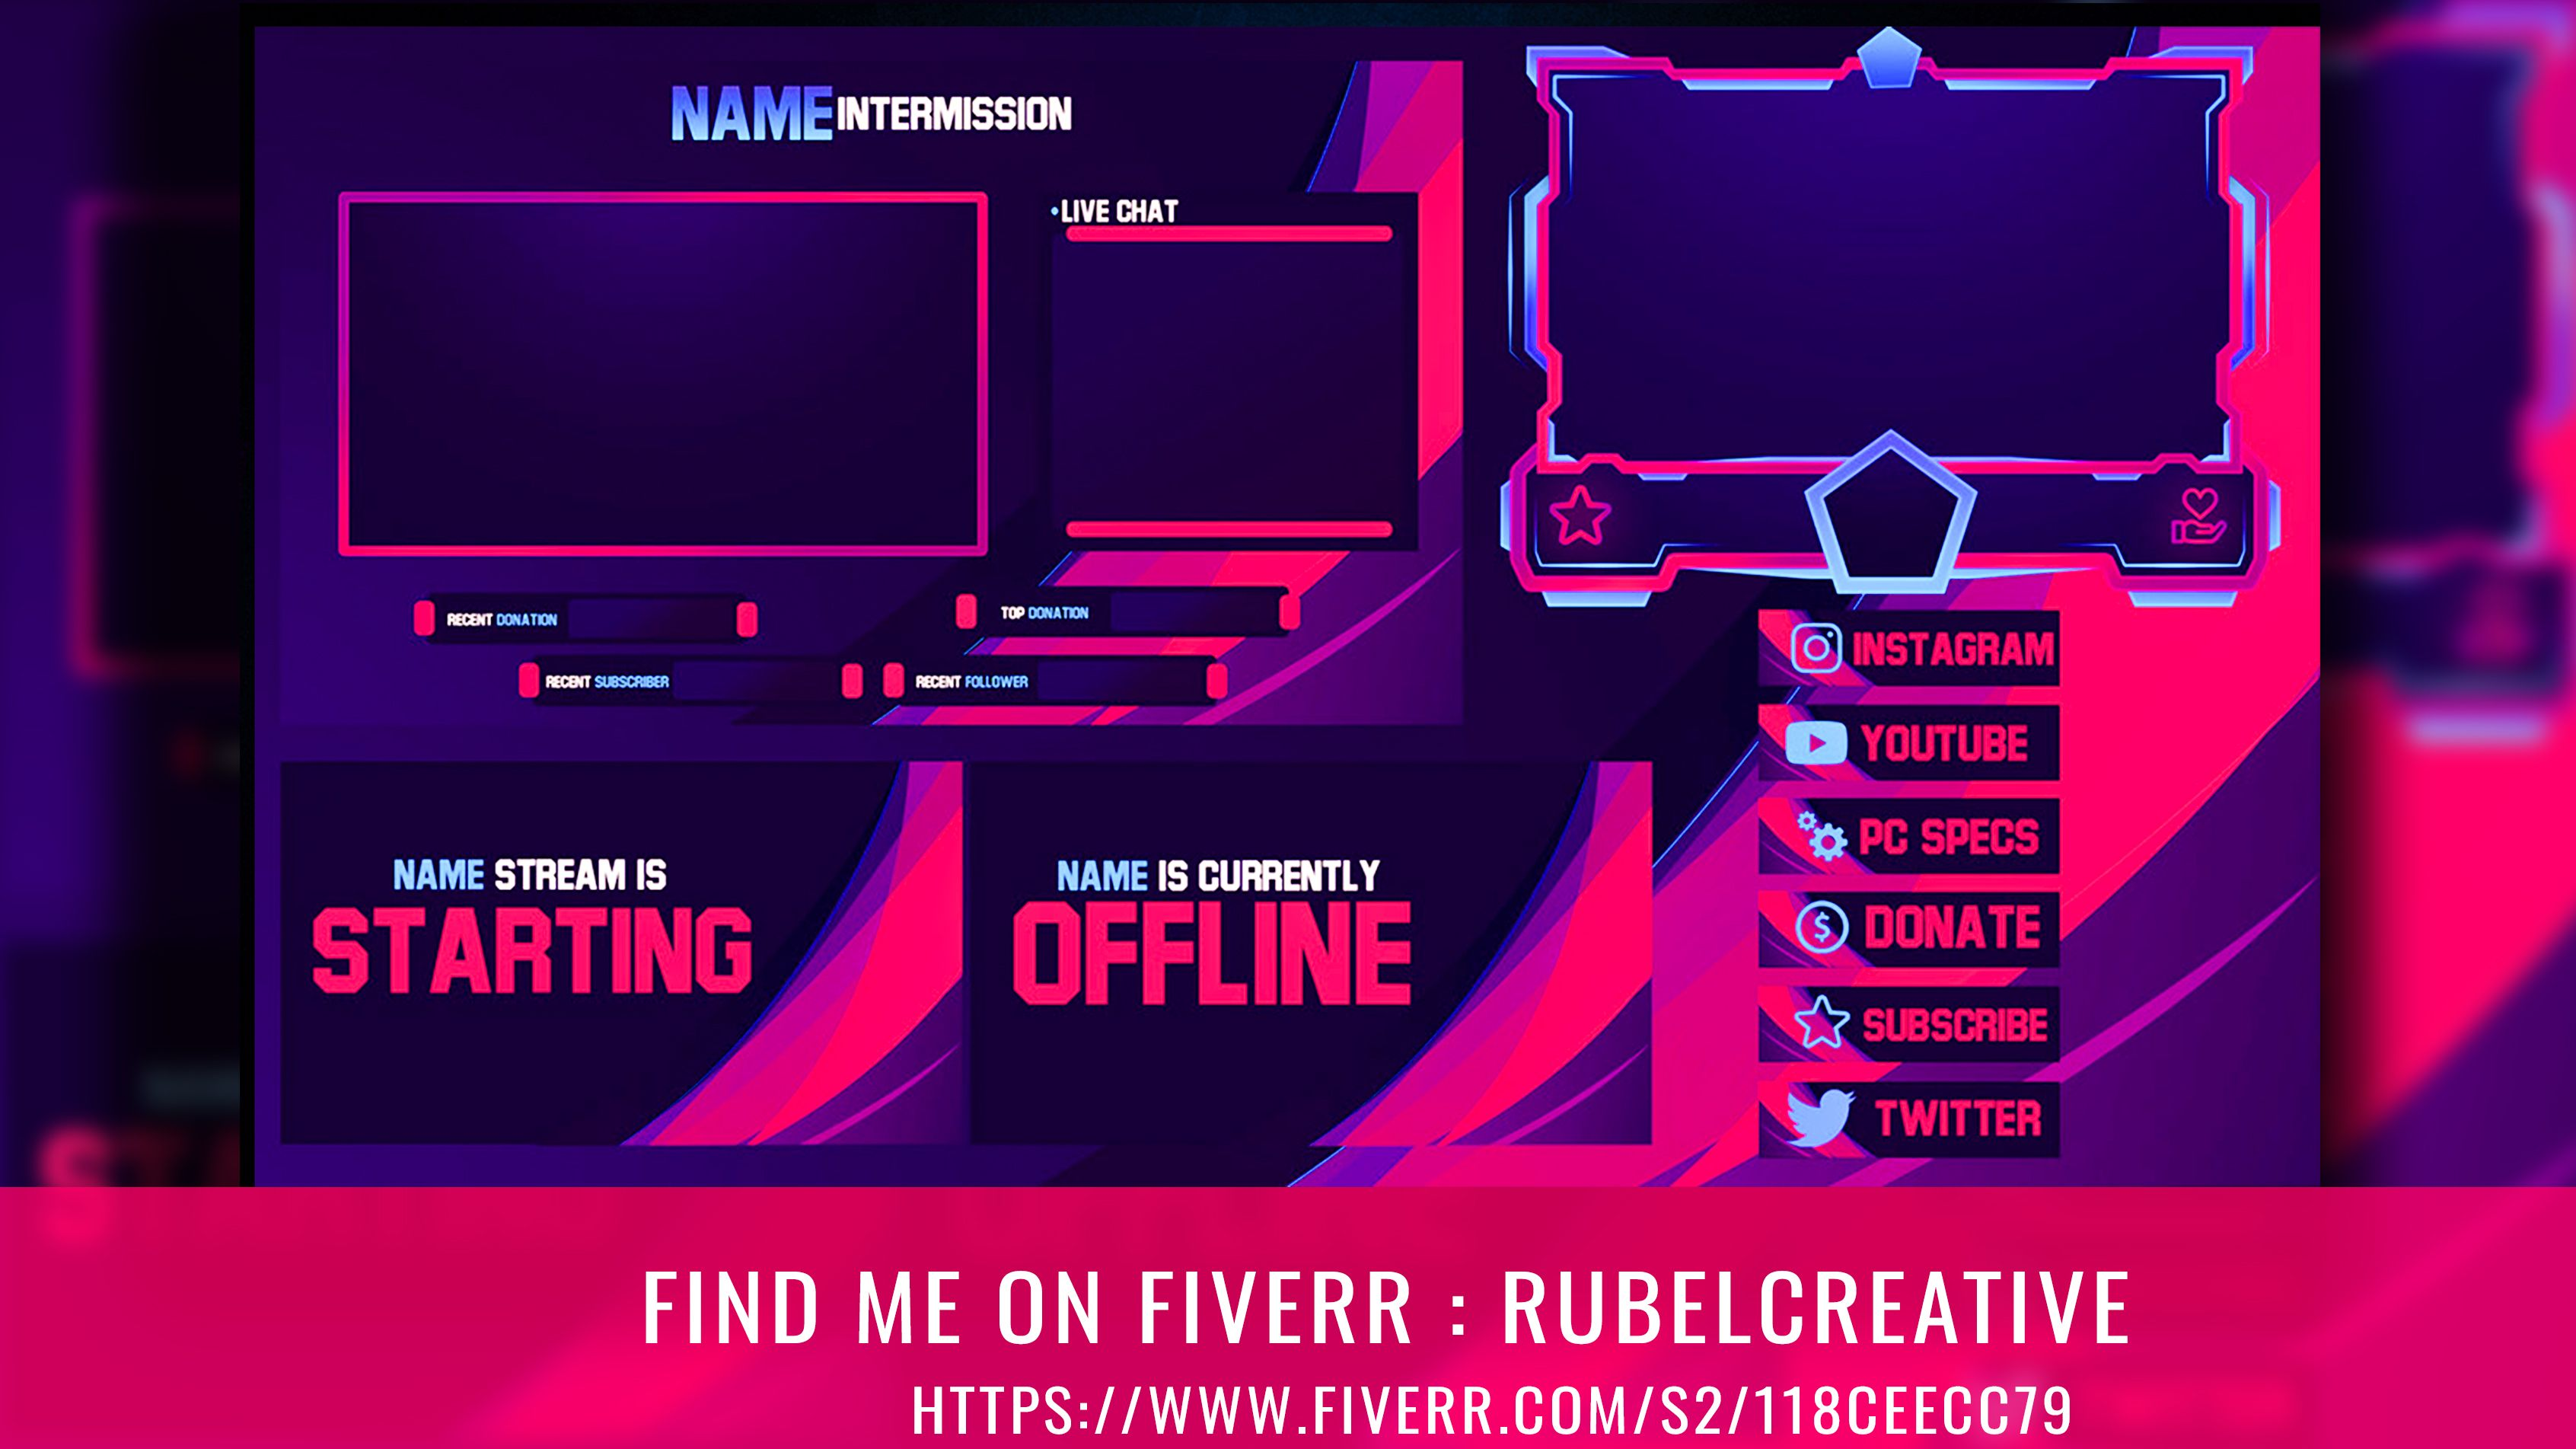 rubelcreative I will design twitch overlay for your